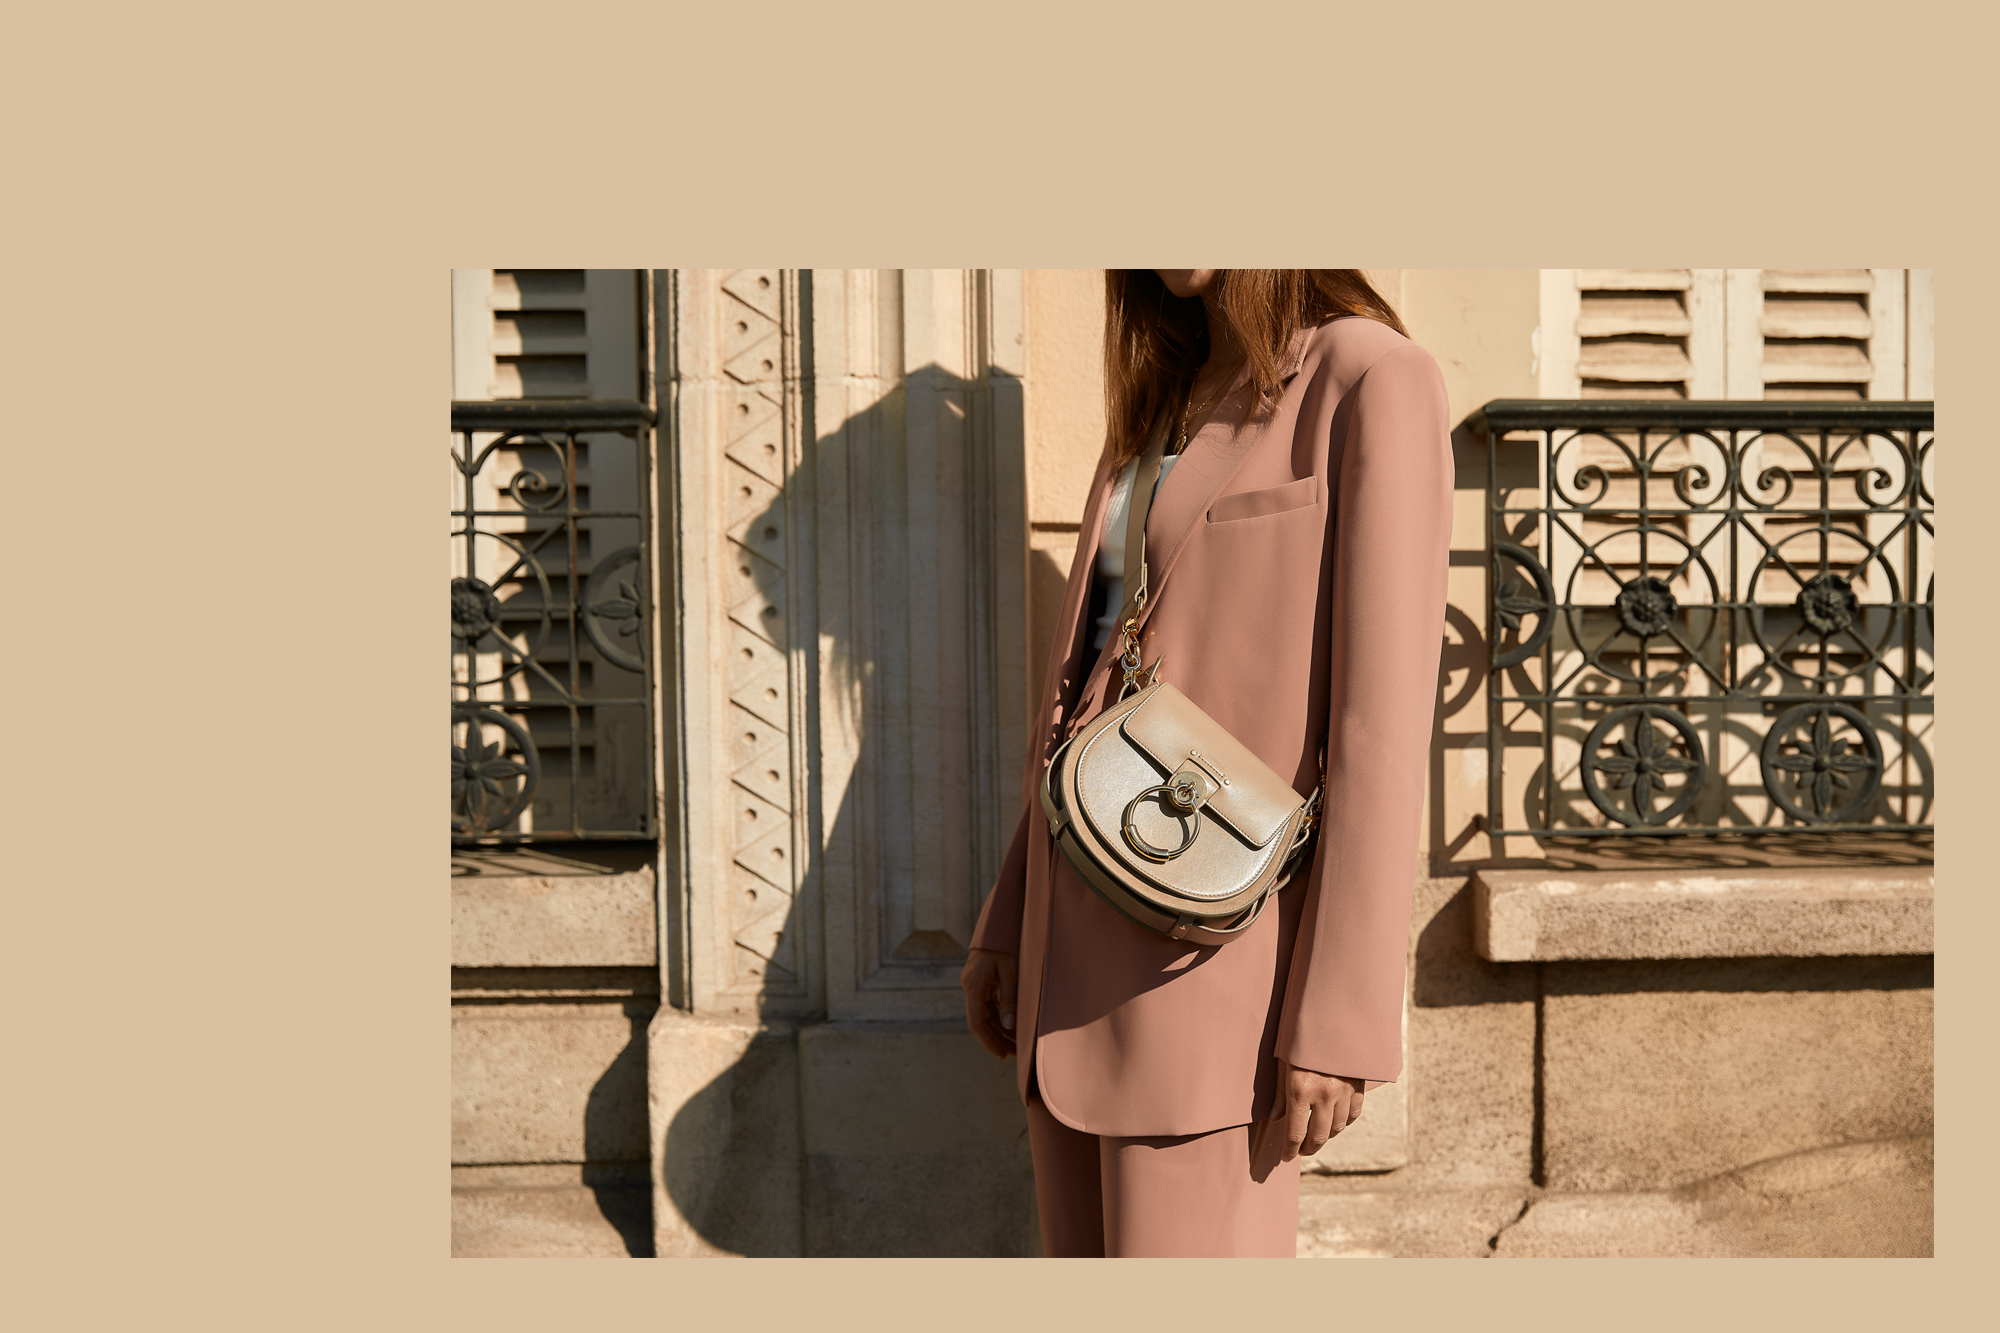 Chloe Bag, Chloe, Bag, Pink Suit, Outfit, Suit, Paris